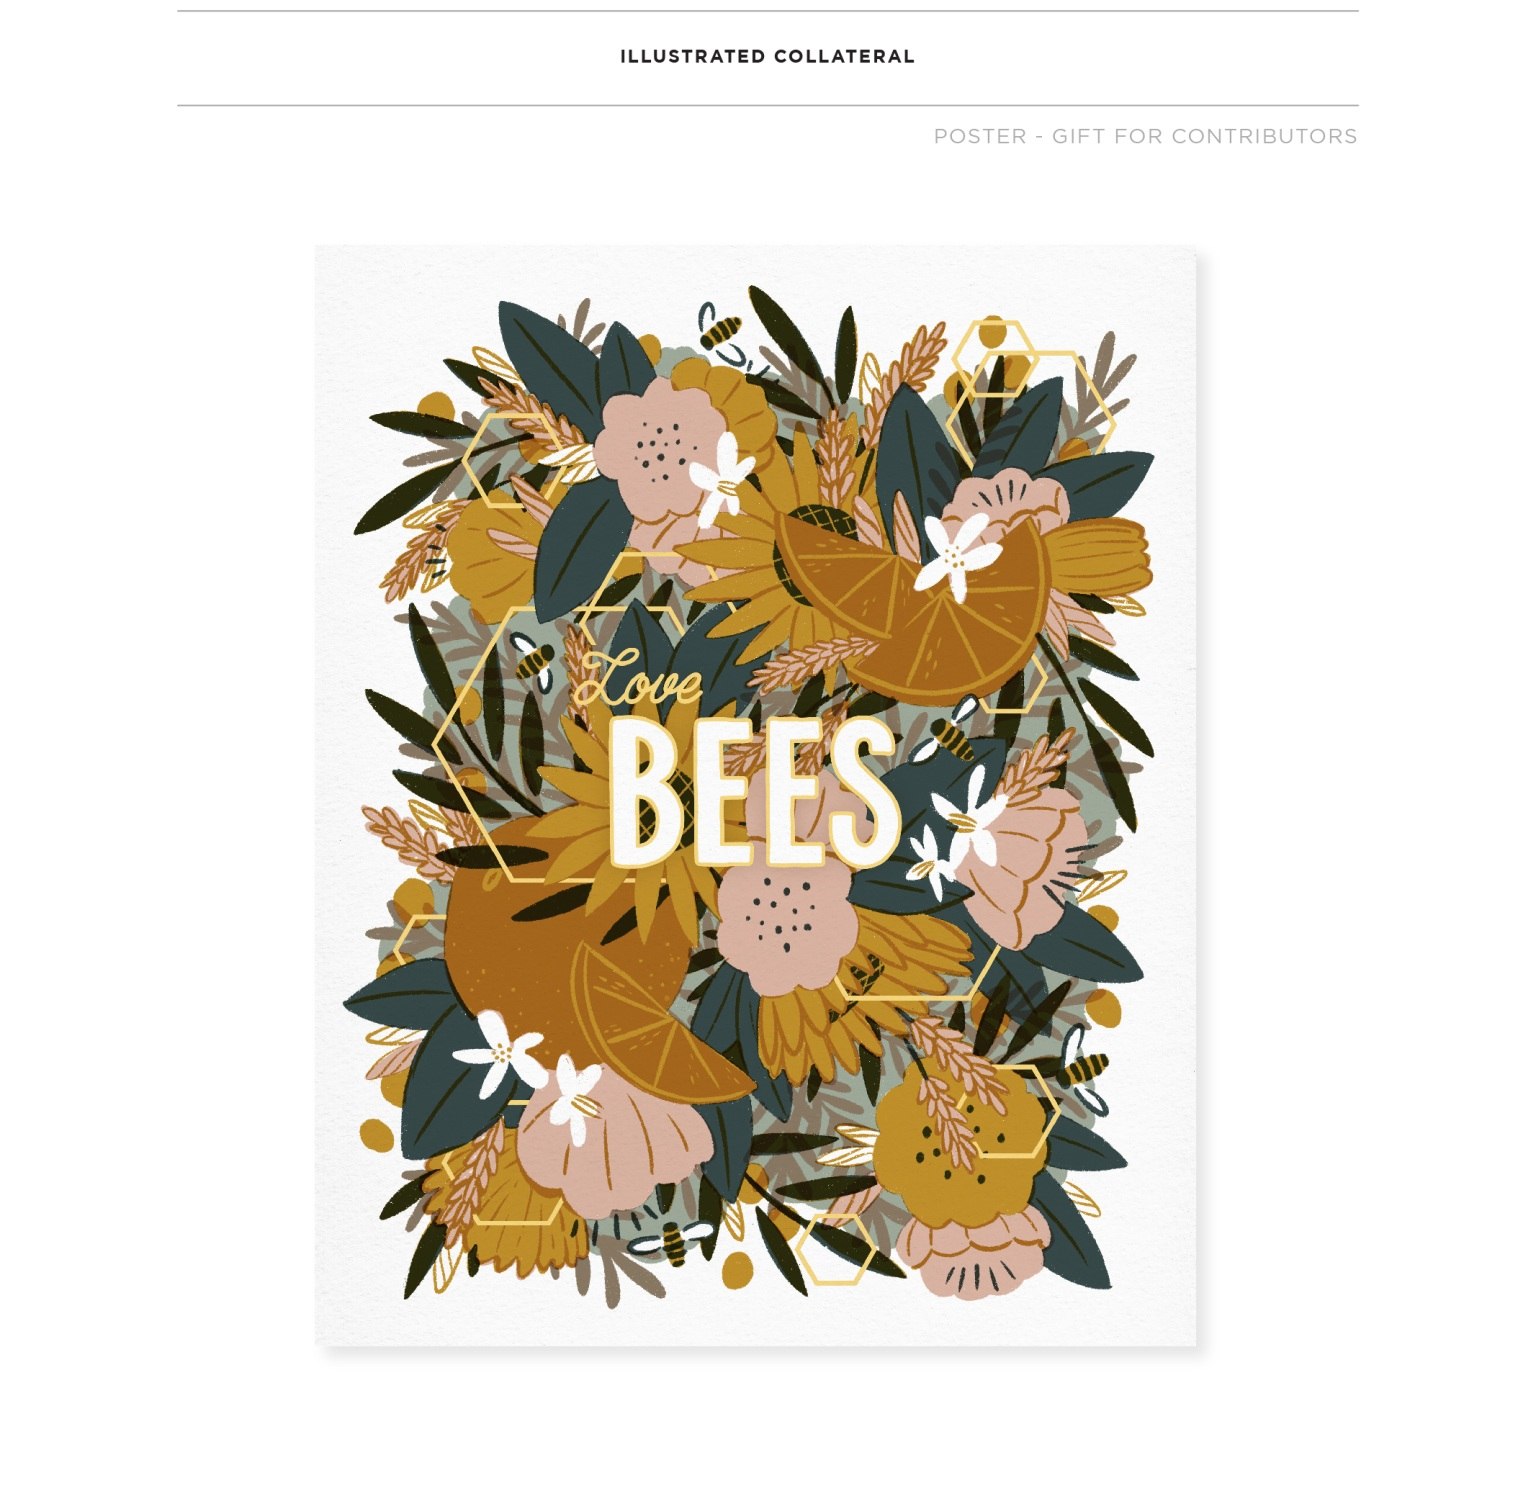 American Beekeeping Federation Brand Identity, Pattern, & Illustrated Collateral